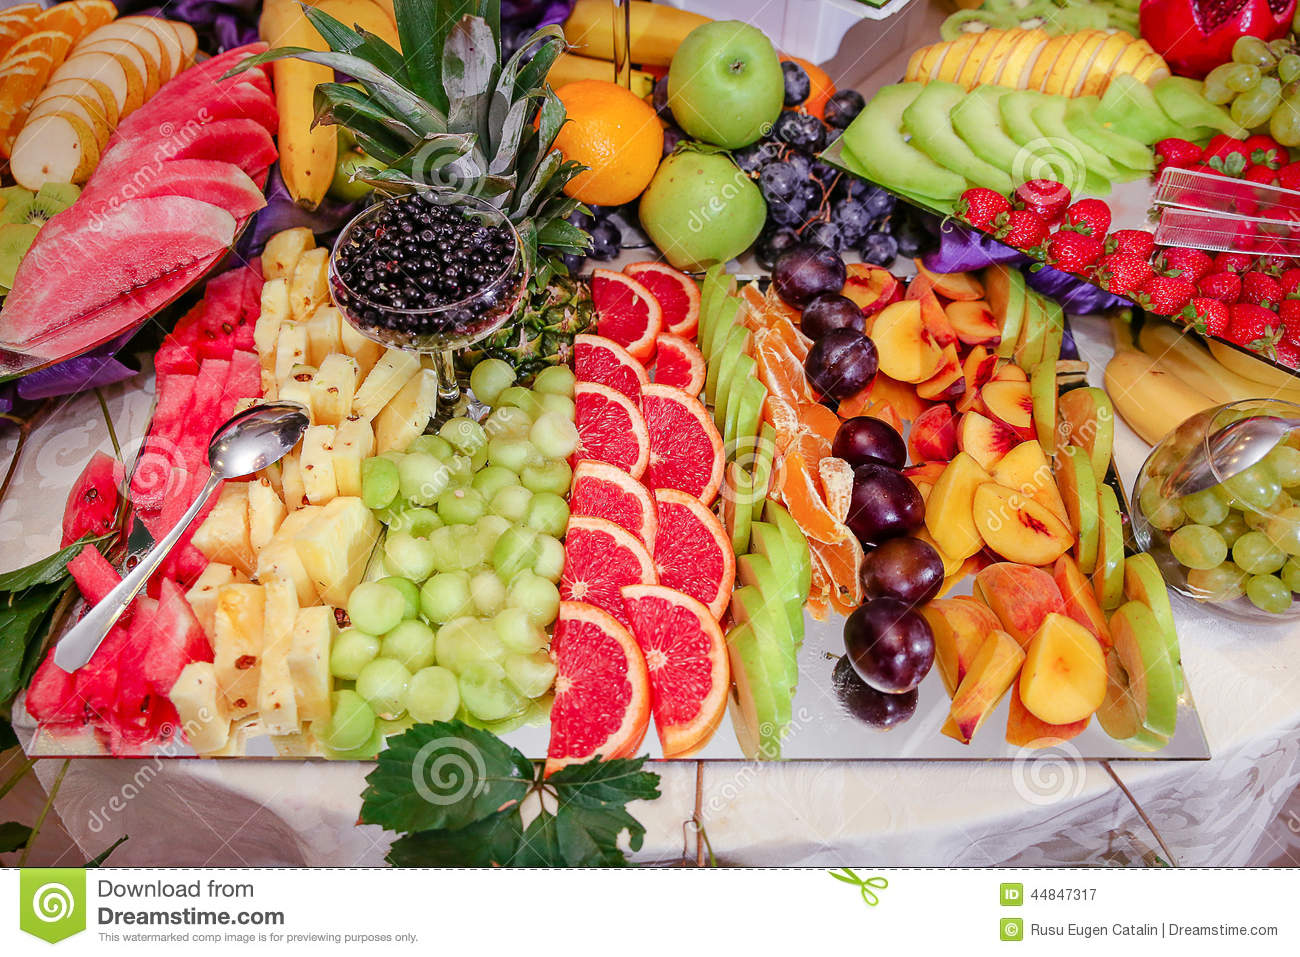 Porte des fruits la d coration photo stock image 44847317 for Decoration salade de fruits